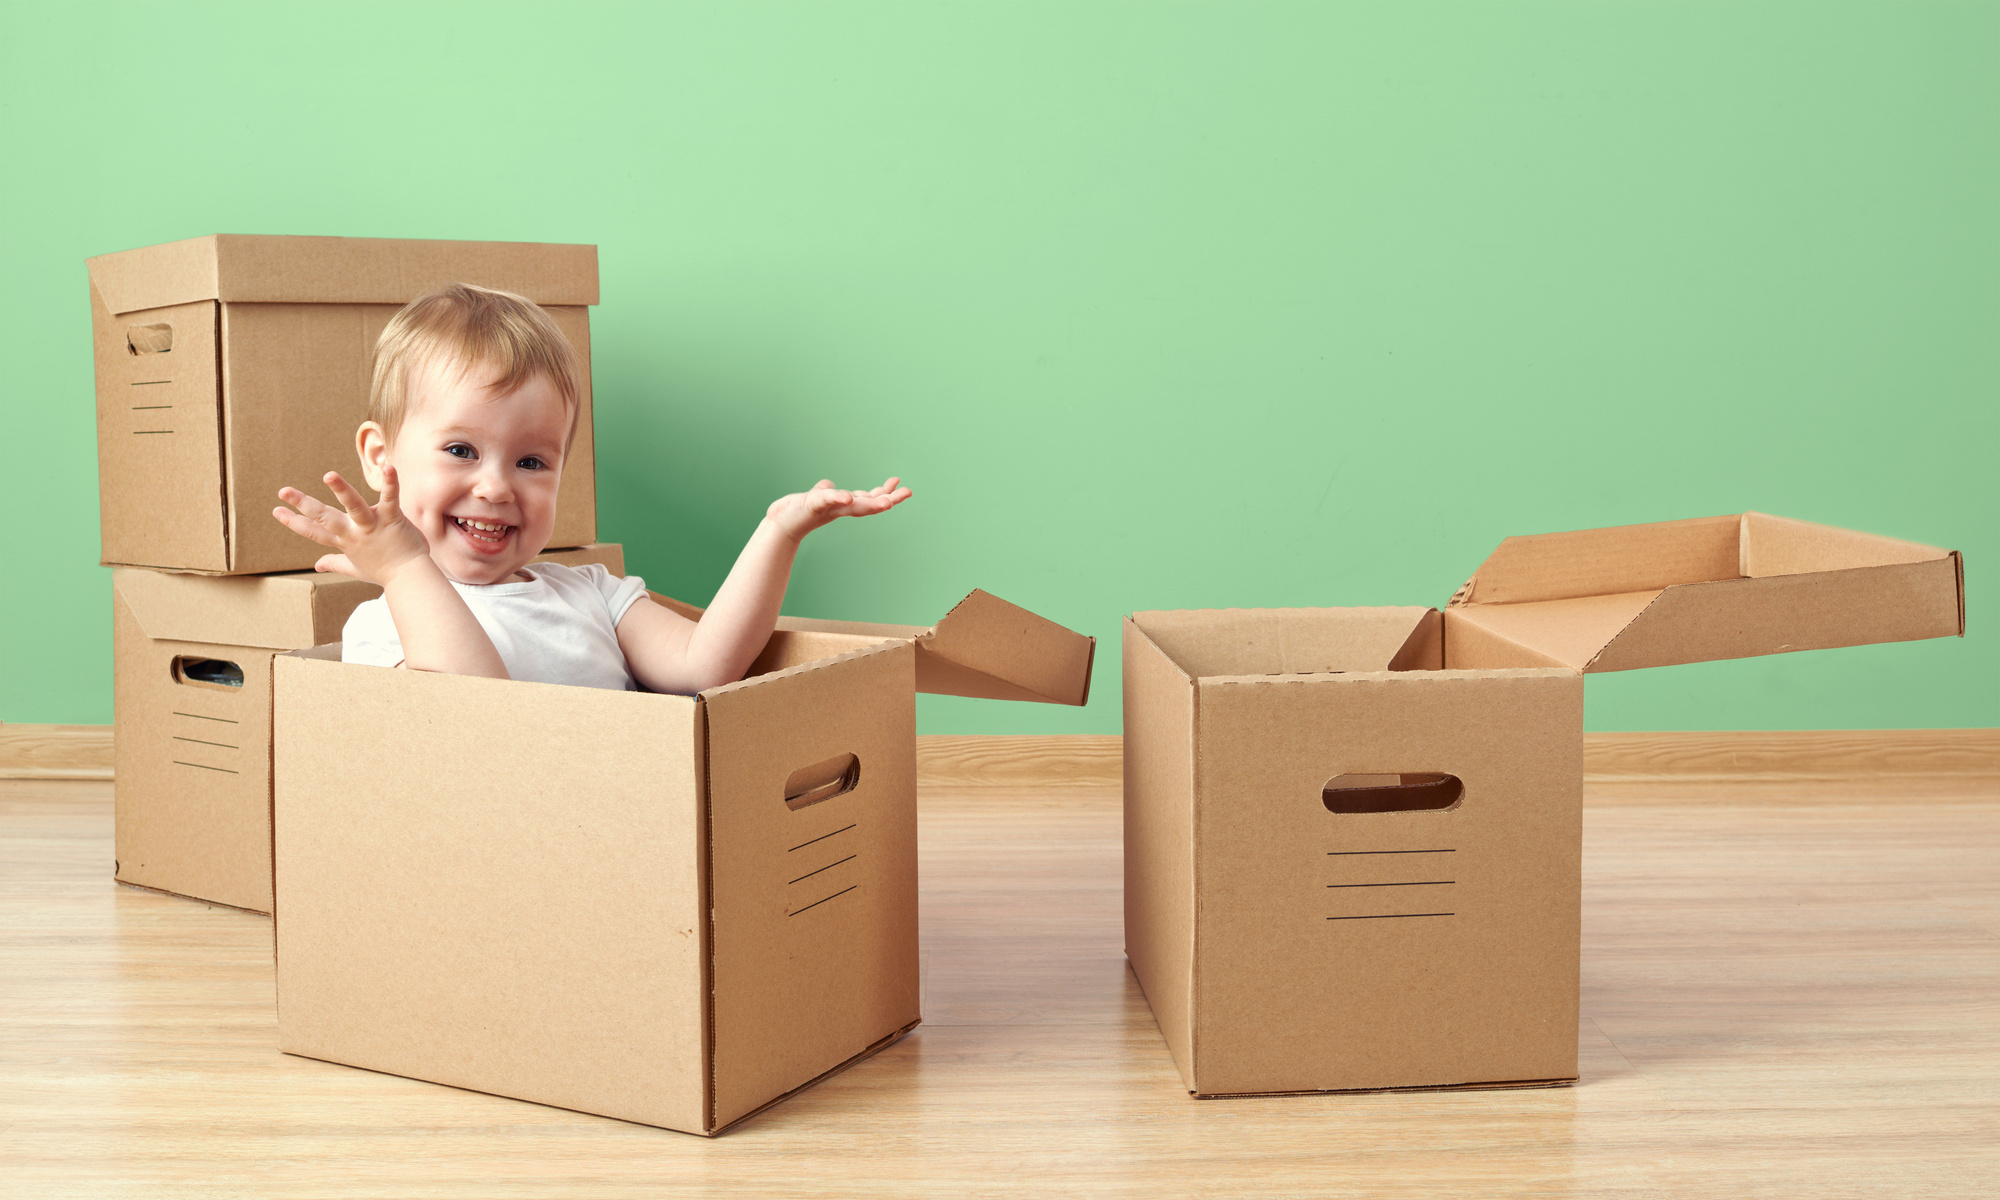 The 7 Best Subscription Boxes for Kids That Get the Parent Approval